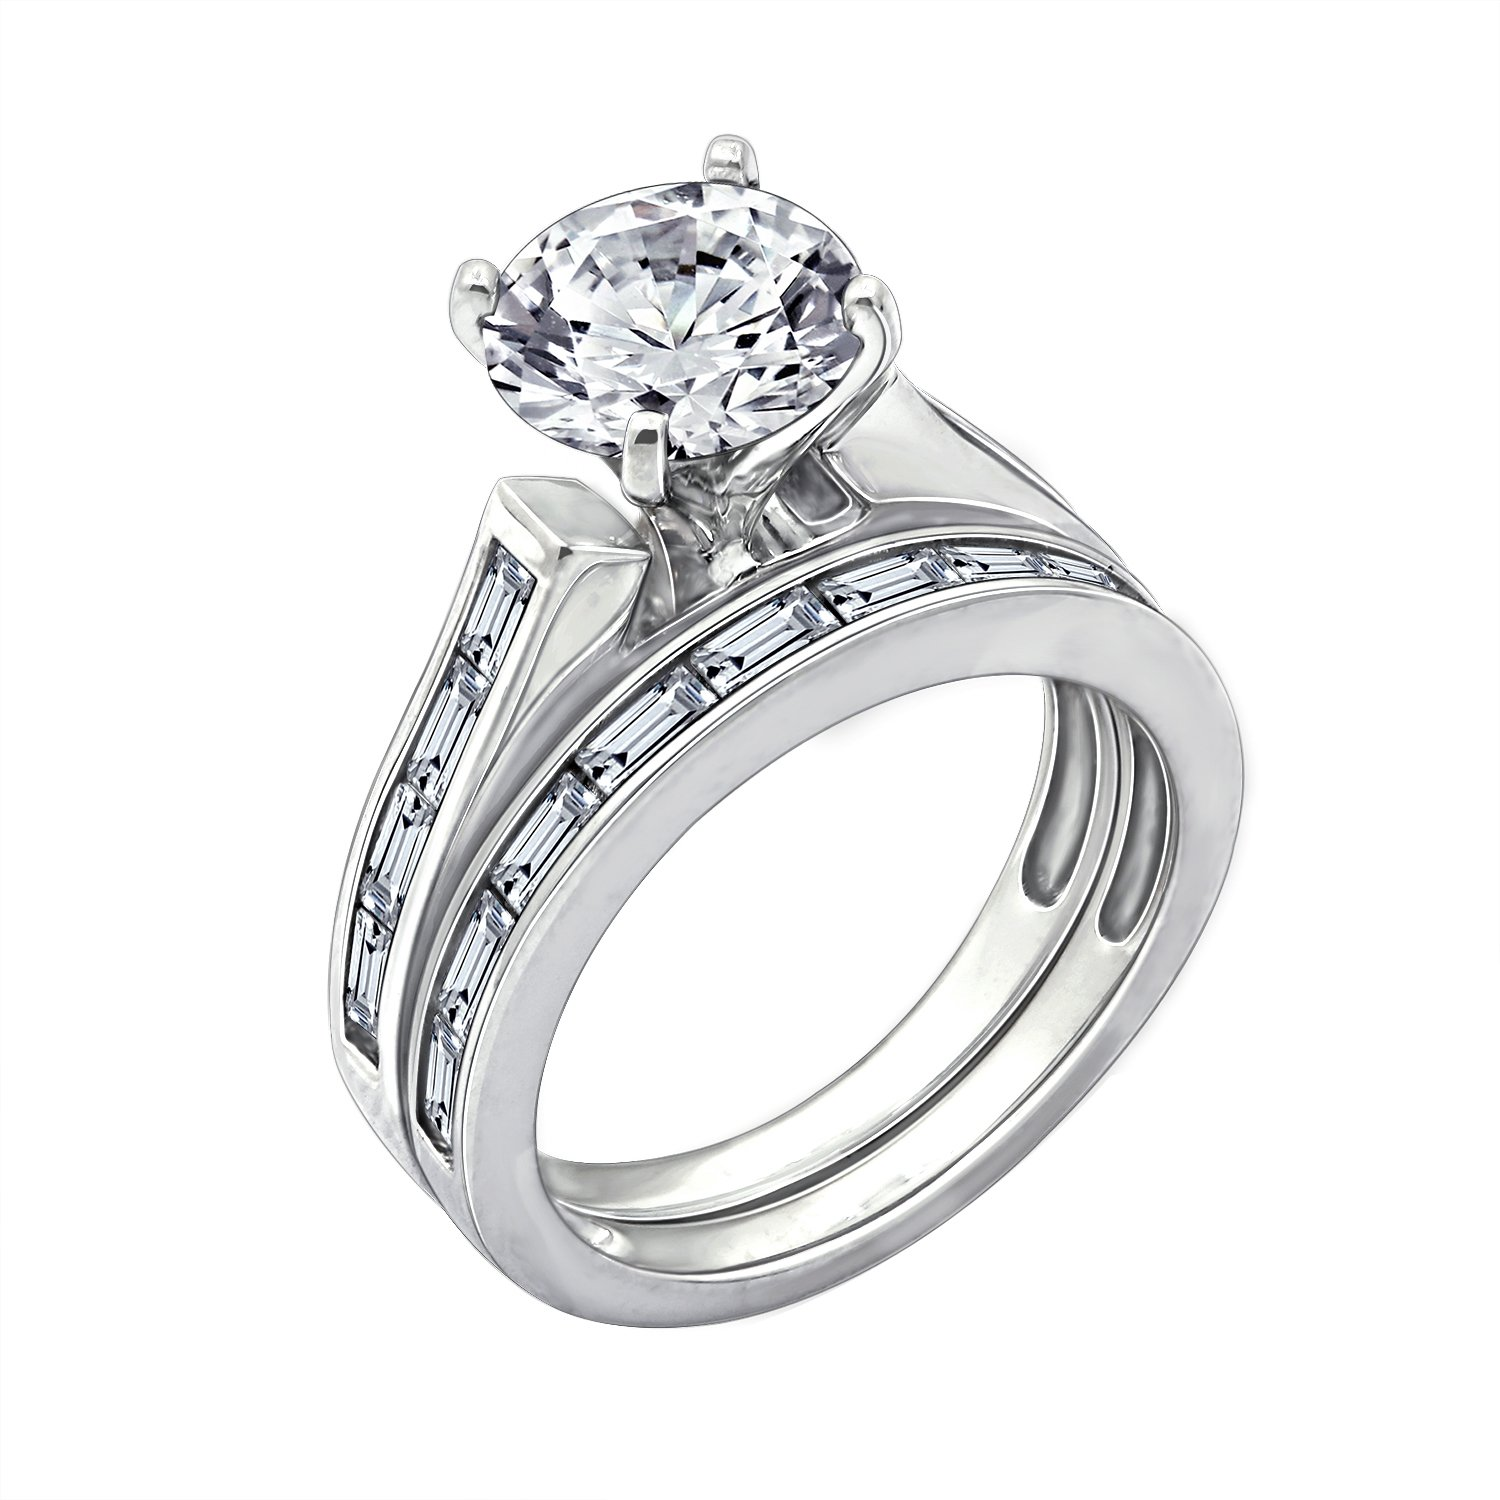 745821357a3 Amazon.com  Diamonbliss Sterling Silver Cubic Zirconia Round Baguette  Wedding Set Ring  Jewelry